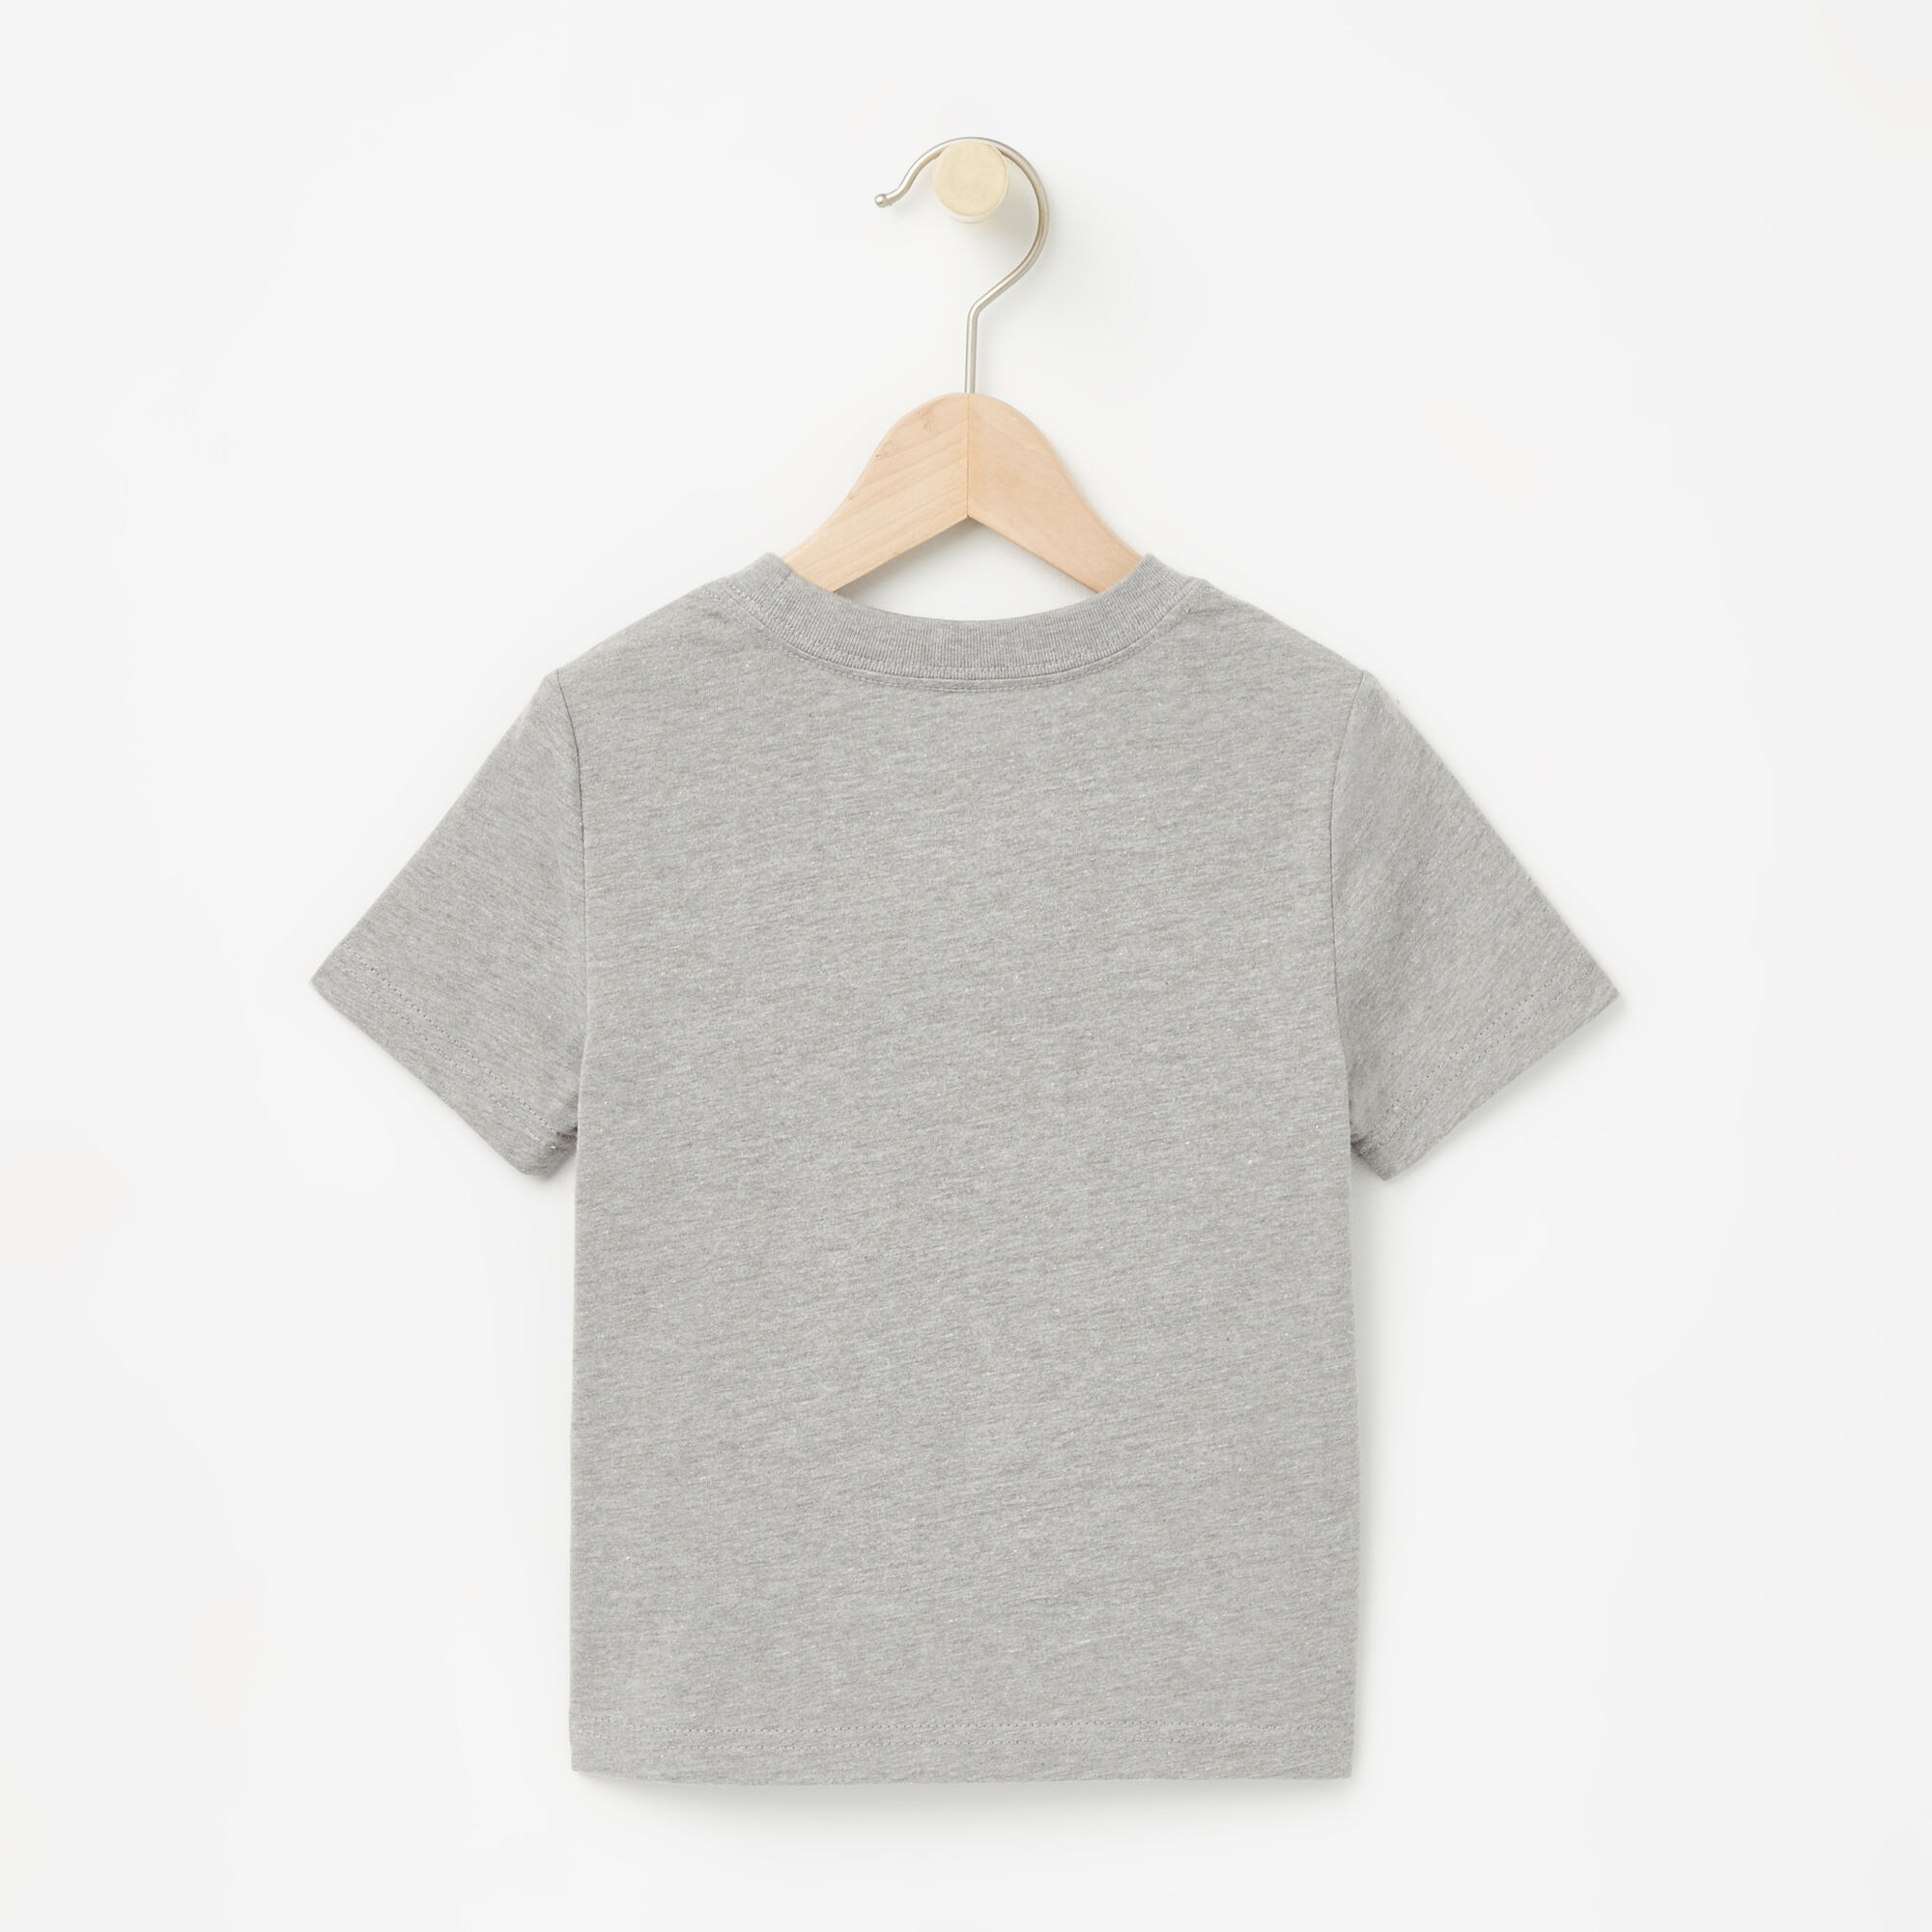 Toddler Roots Canada Leaf T-shirt